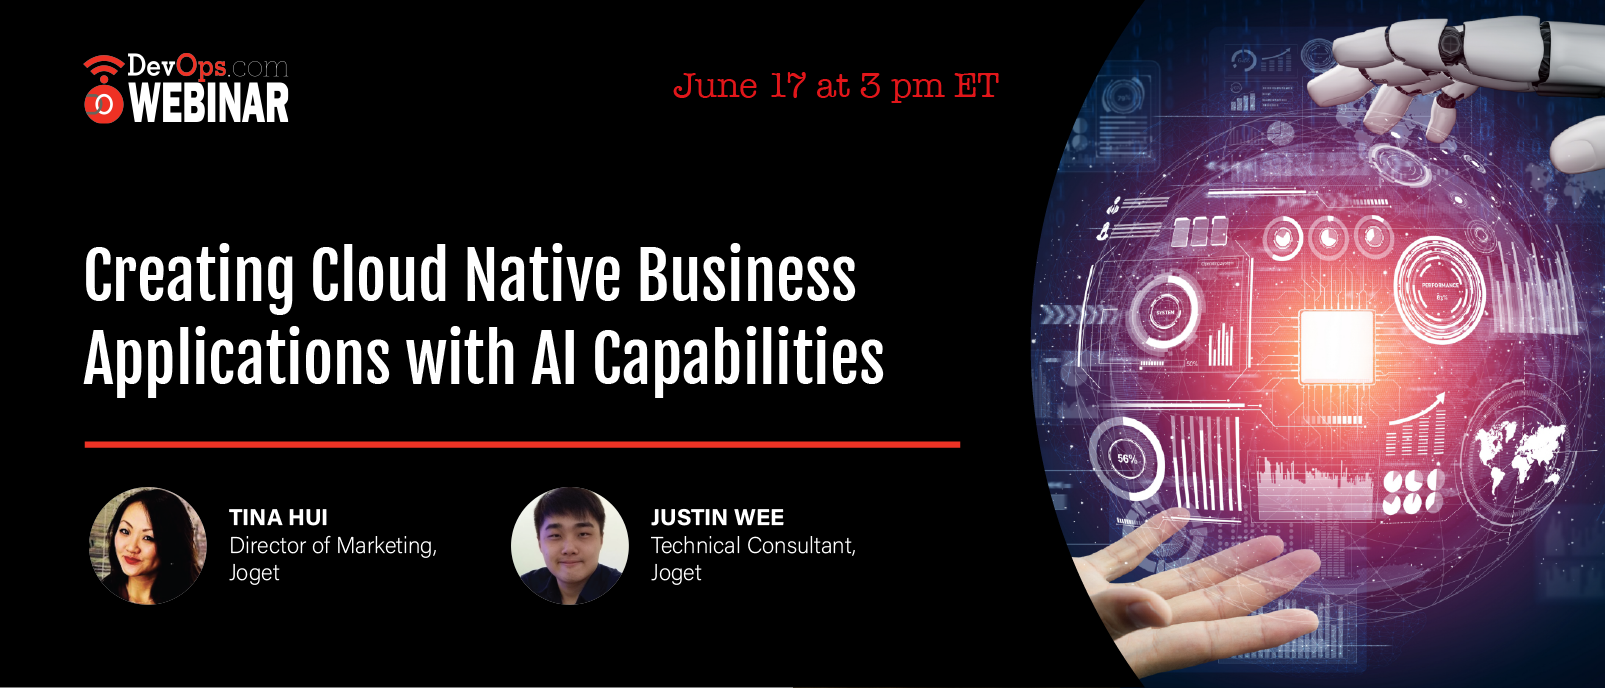 Creating Cloud Native Business Applications with AI Capabilities